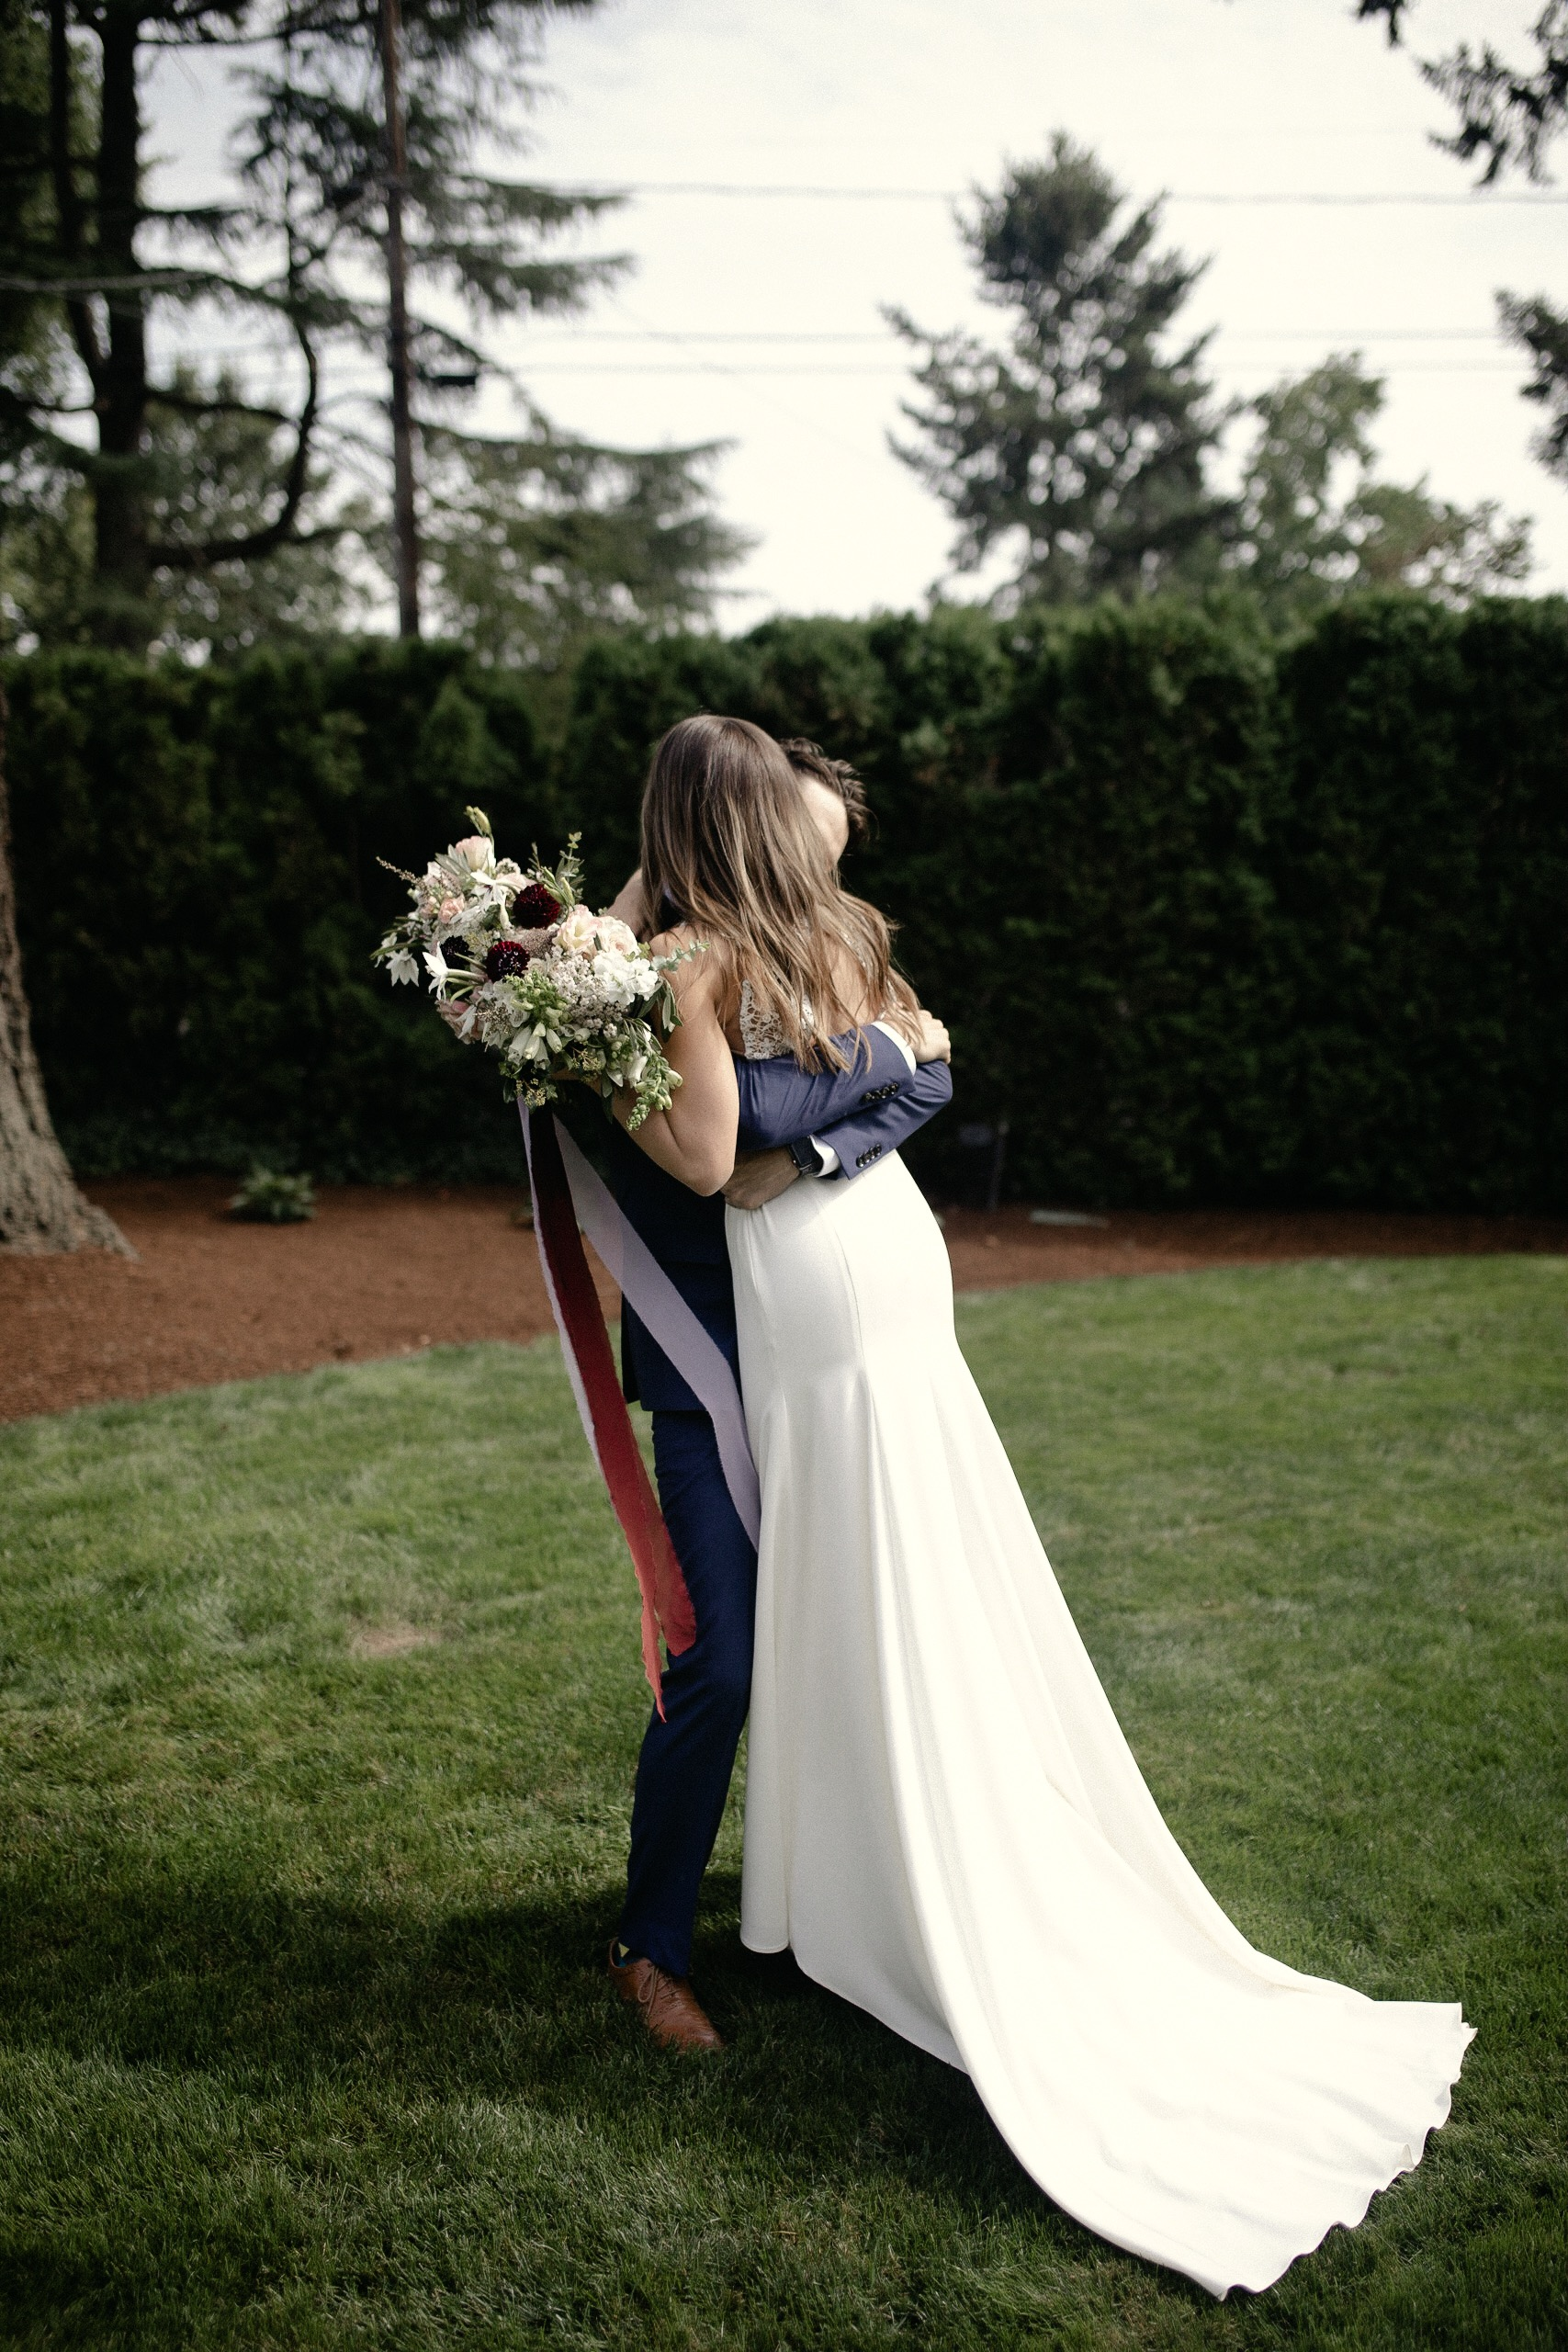 Bride and Groom first look hug Brier and Ivy florals